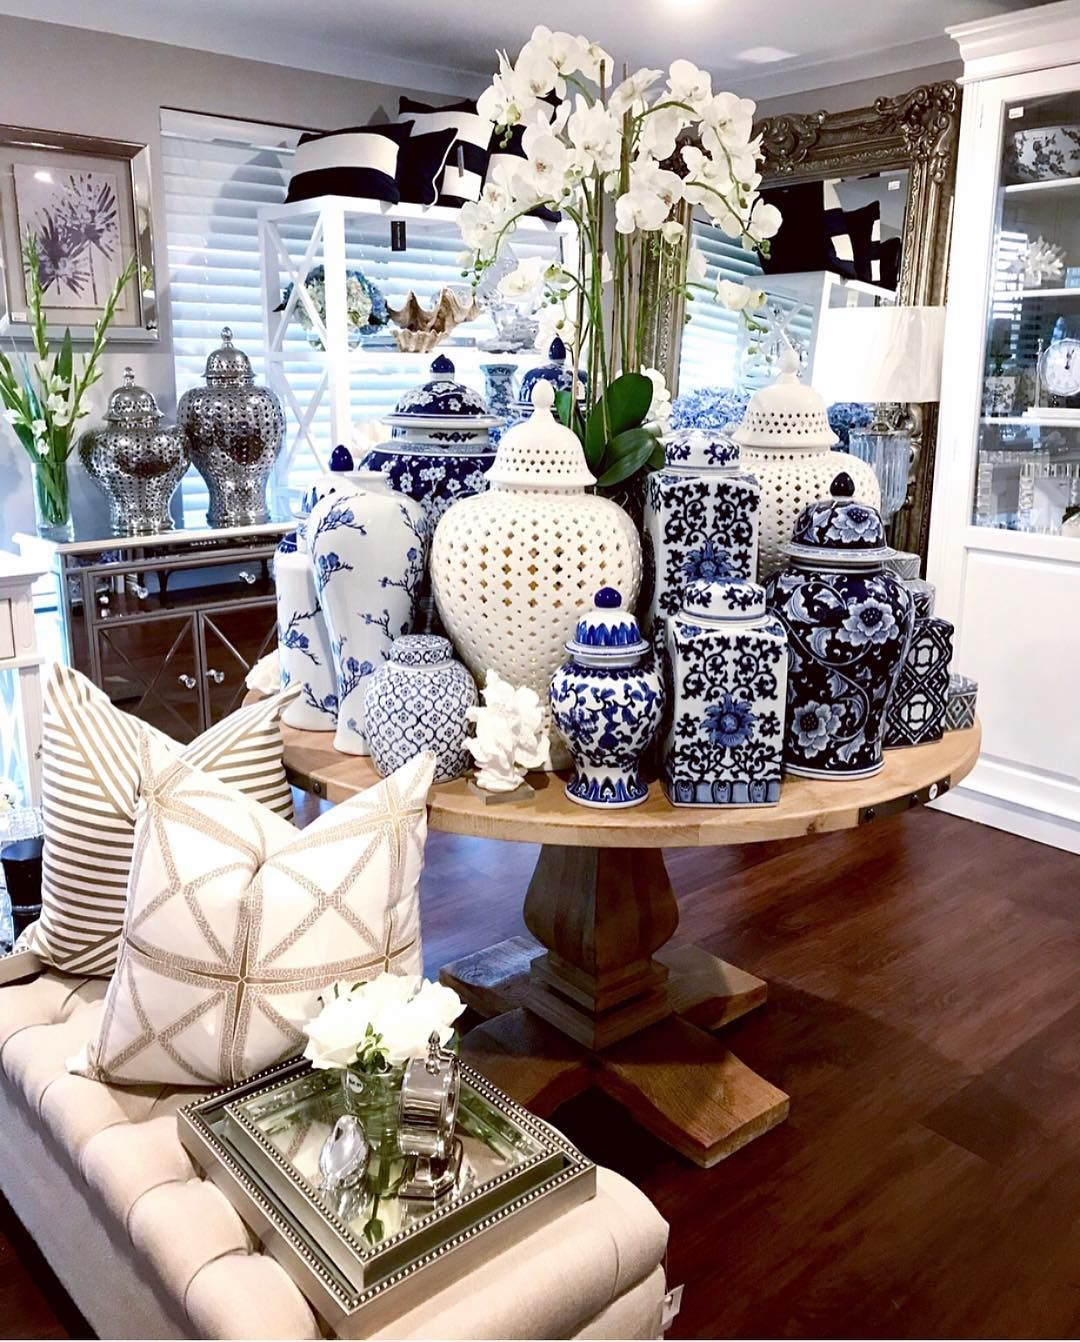 Expensive Home Decor Stores: We Offer A Stunning Range Of Hamptons, Classic, Coastal